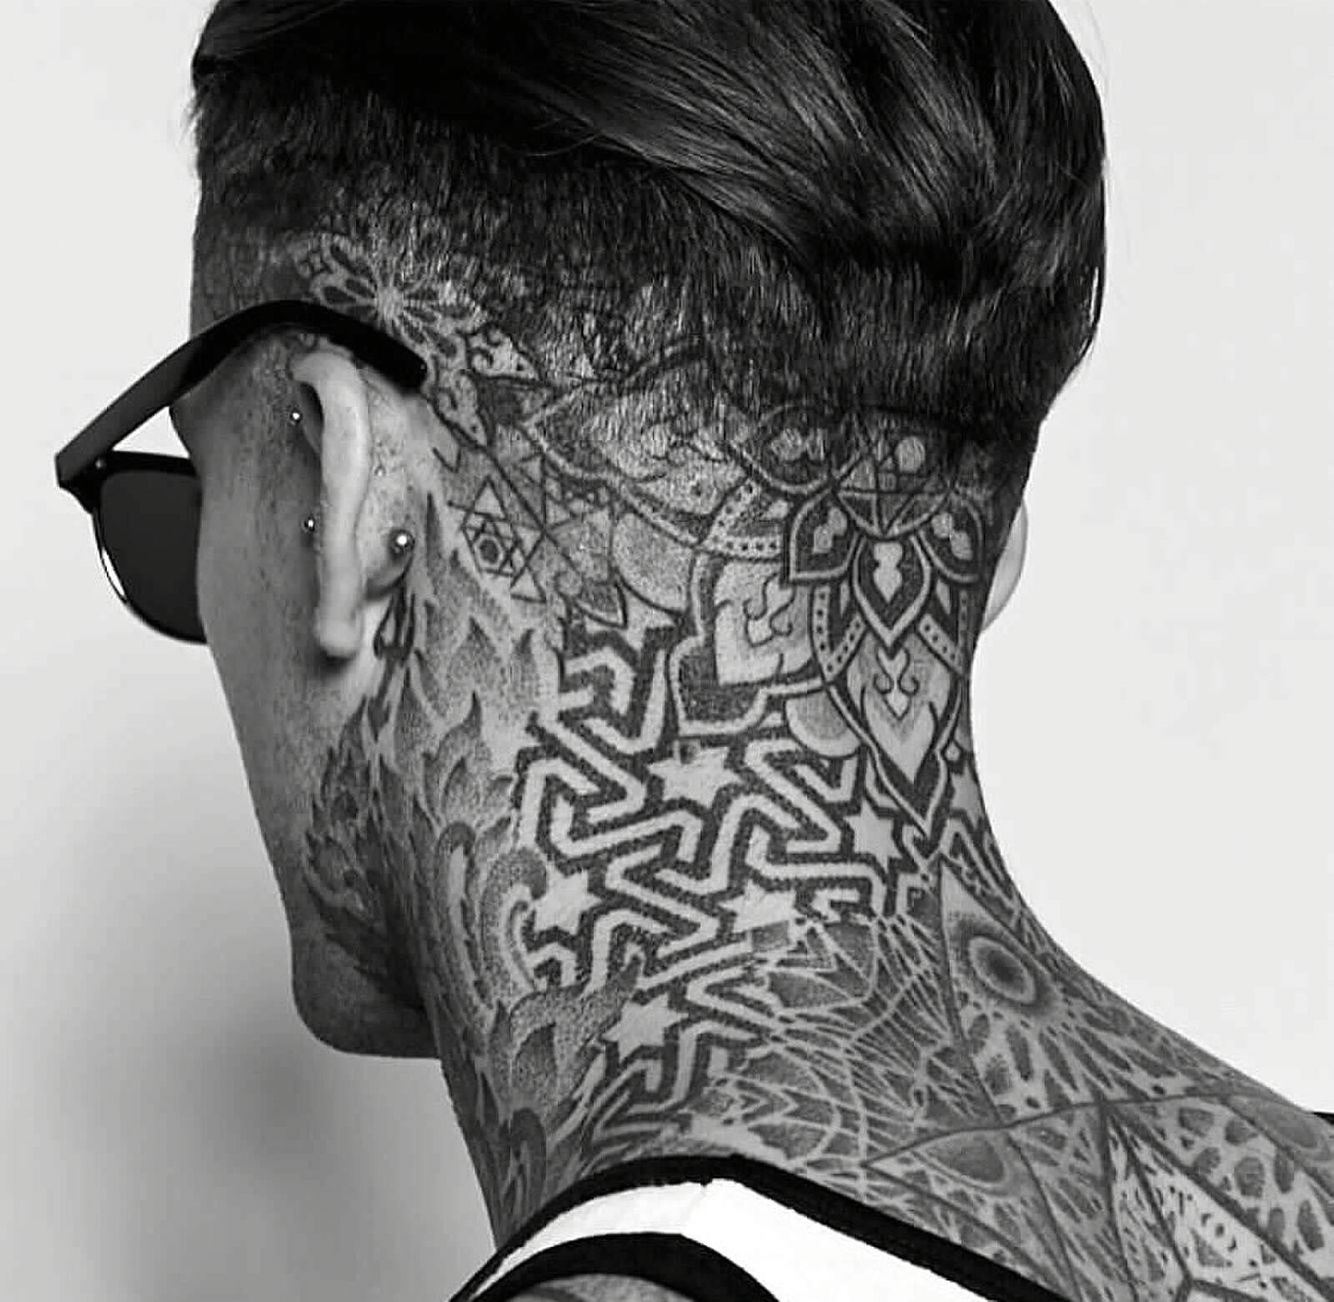 125 Top Neck Tattoo Designs This Year: Stephen James @stephen_james_hendry Instagram